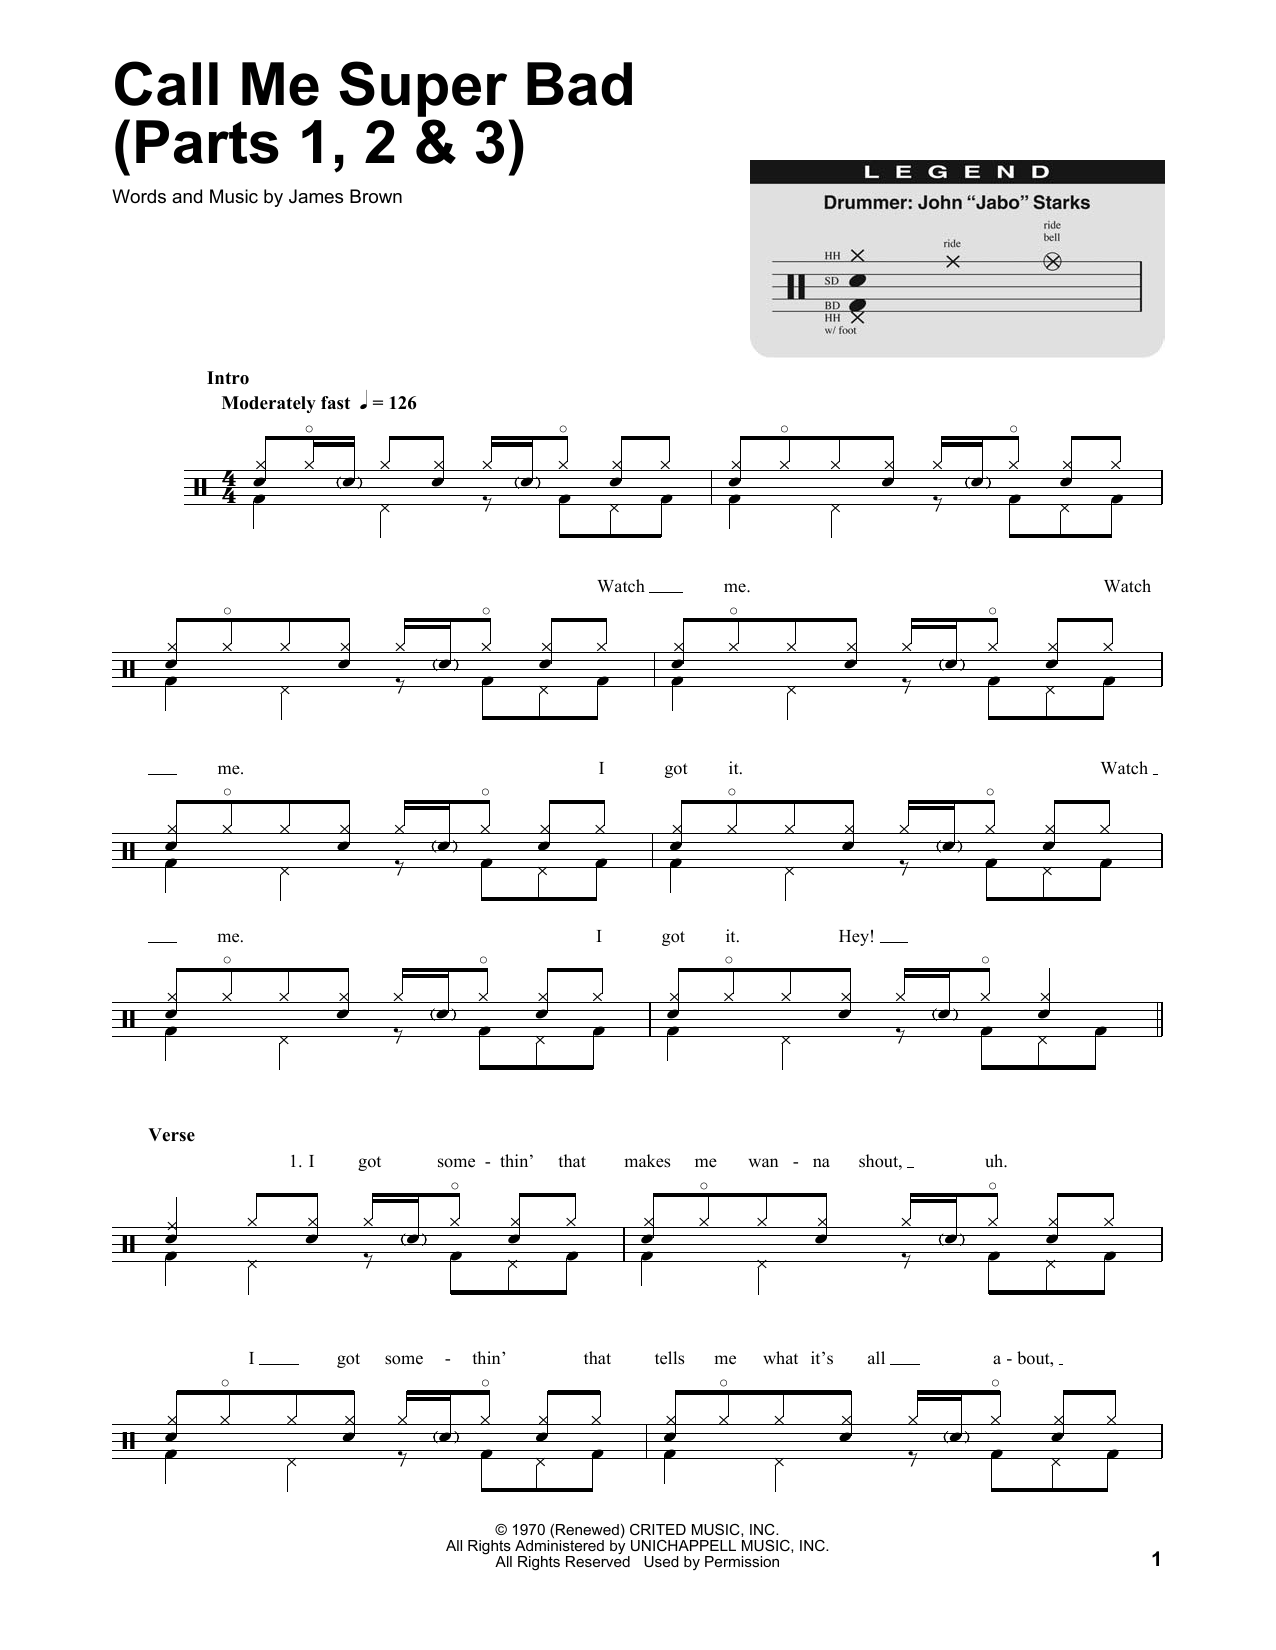 Call Me Super Bad (Parts 1, 2 & 3) Sheet Music